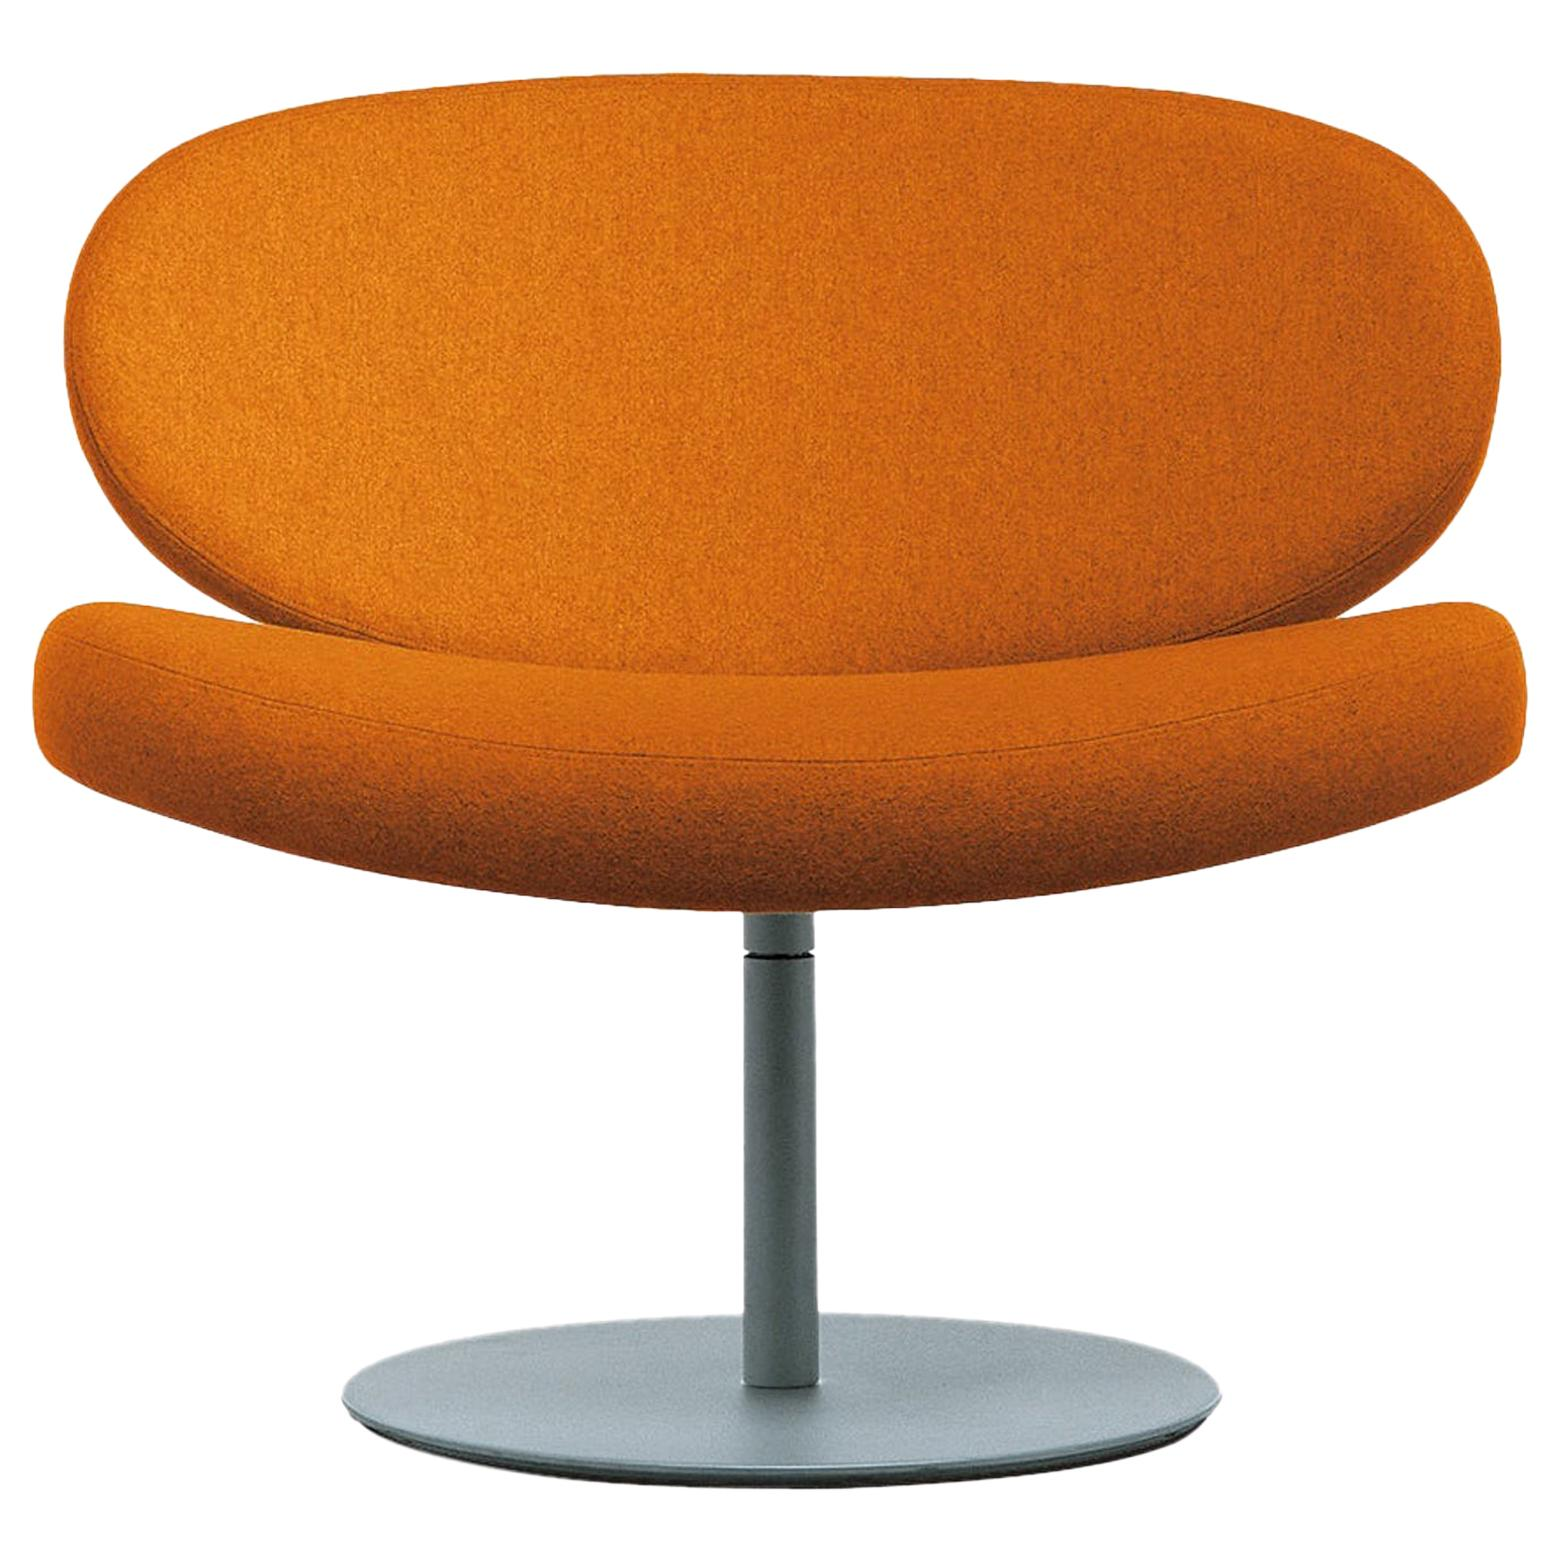 Sunset Armchair in Beech with Orange Hallingdal Fabric by Christophe Pillet